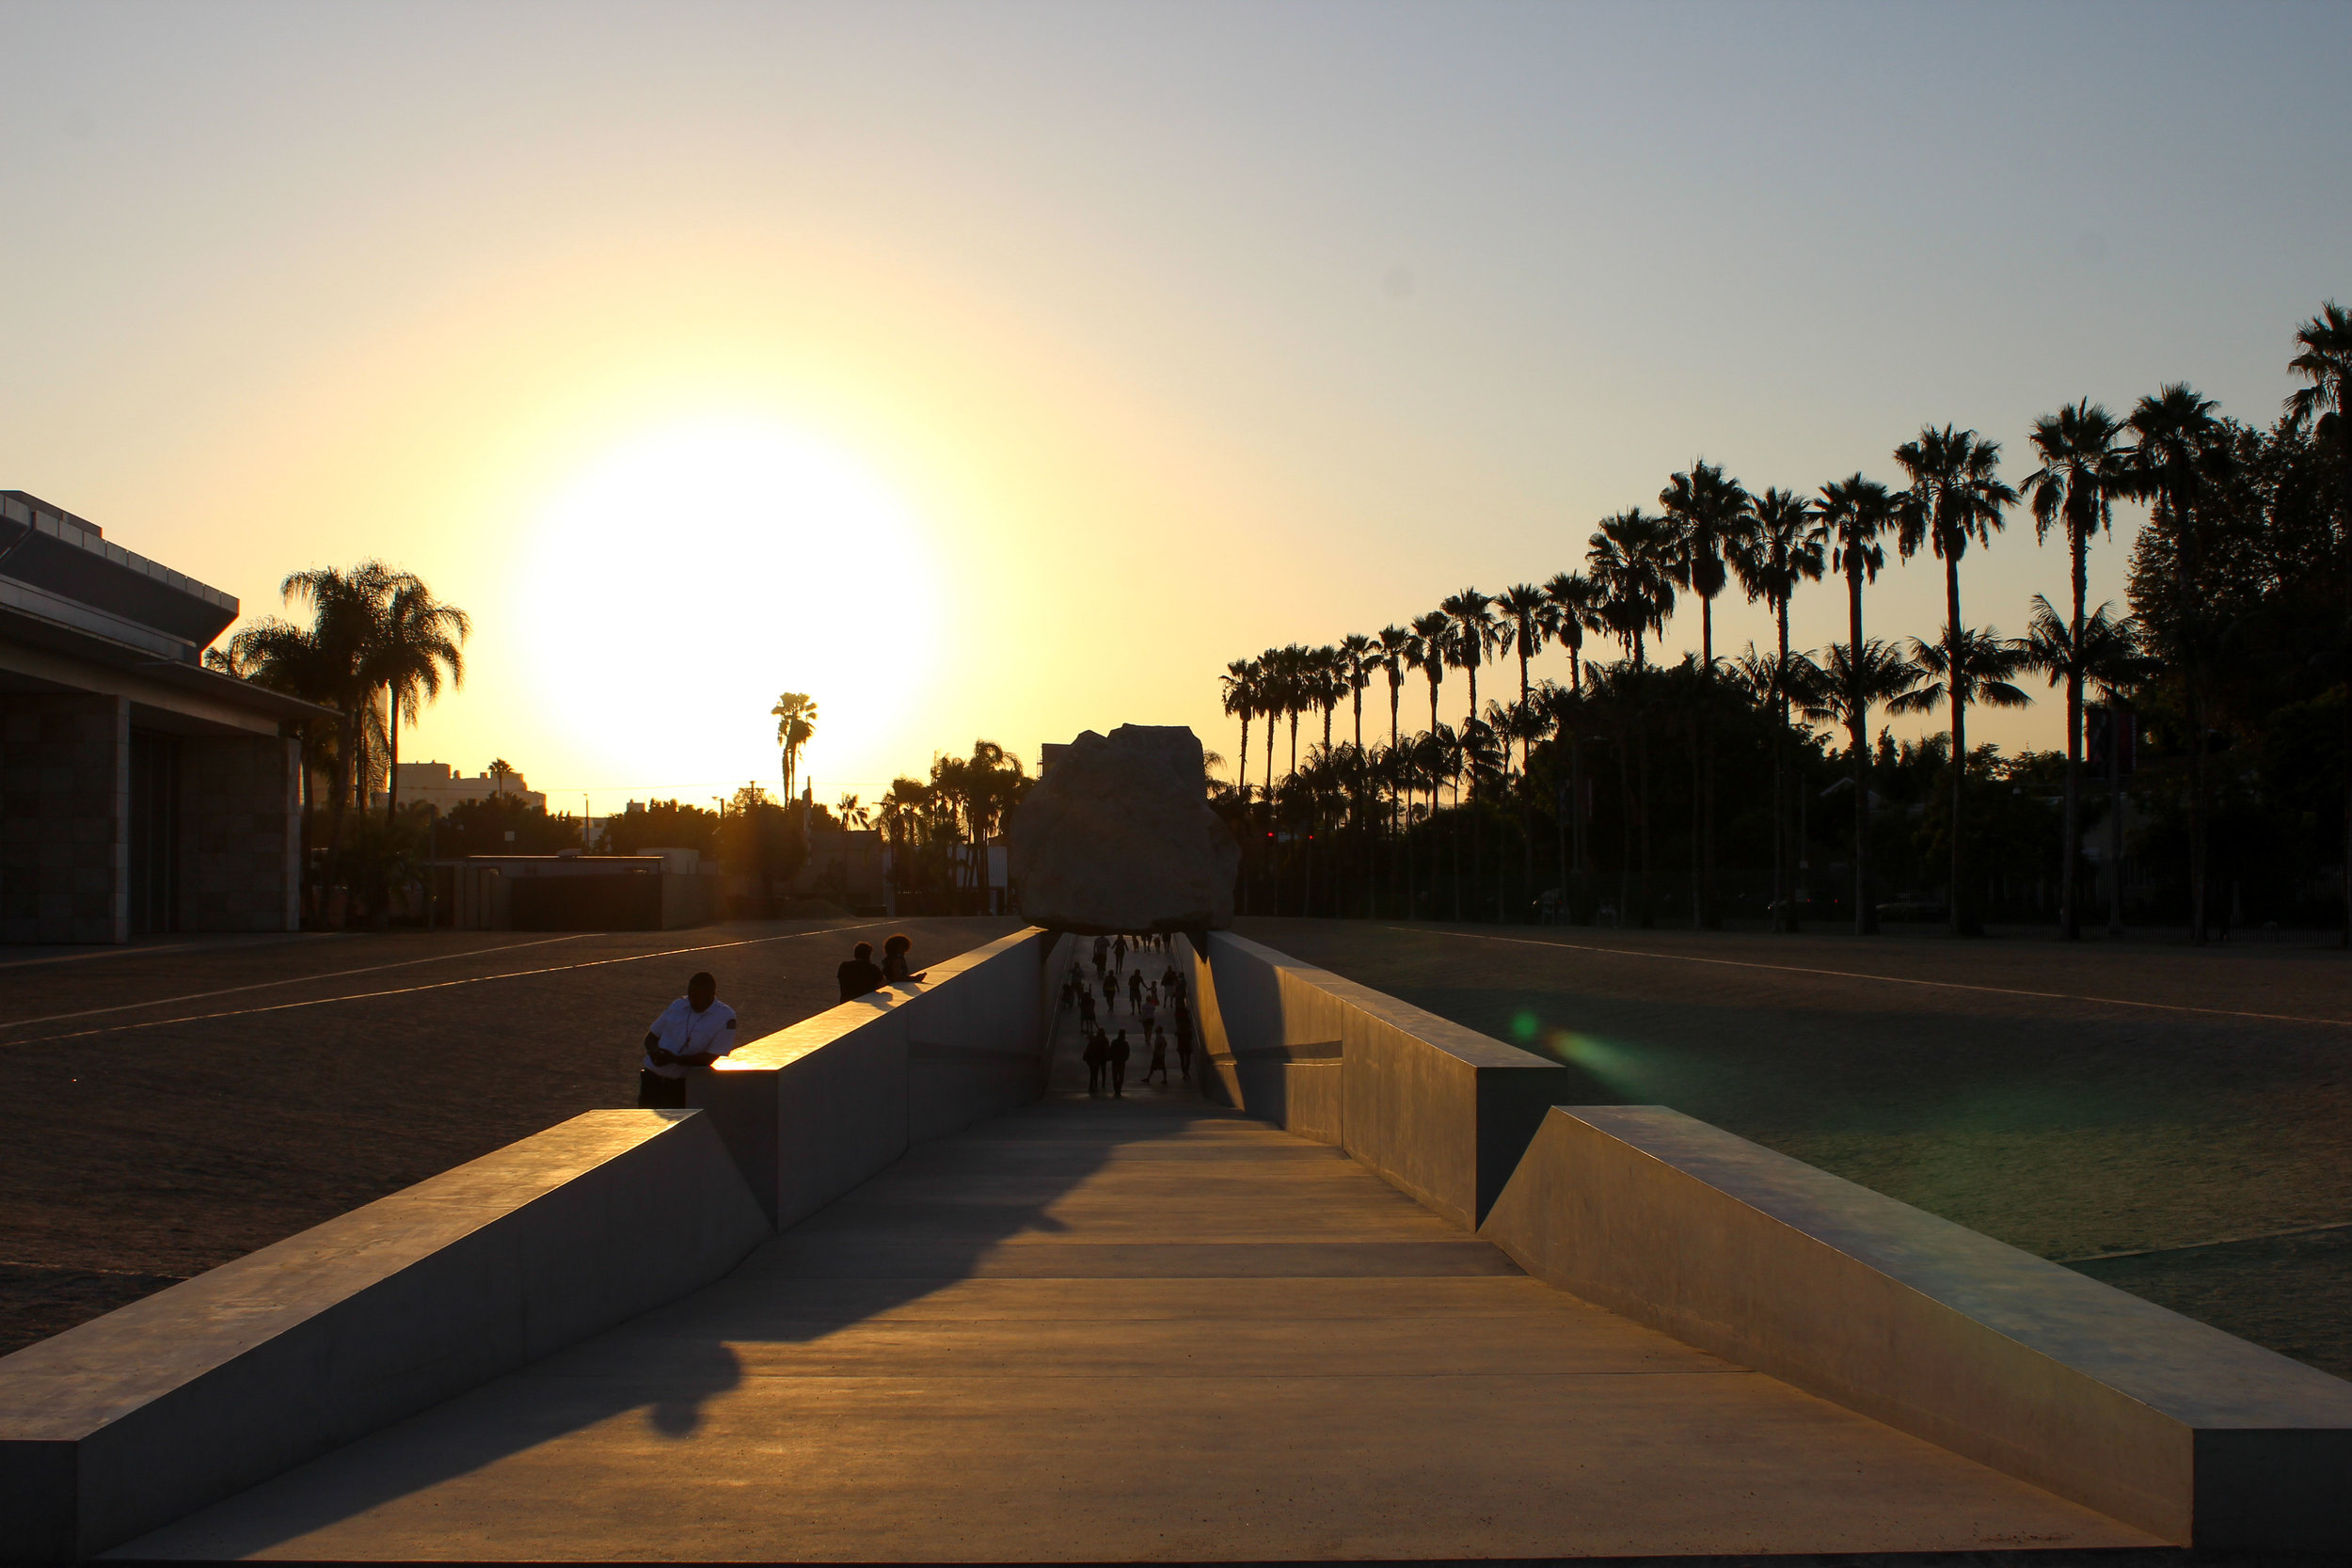 Miscellaneous shots of California, because those are cool too